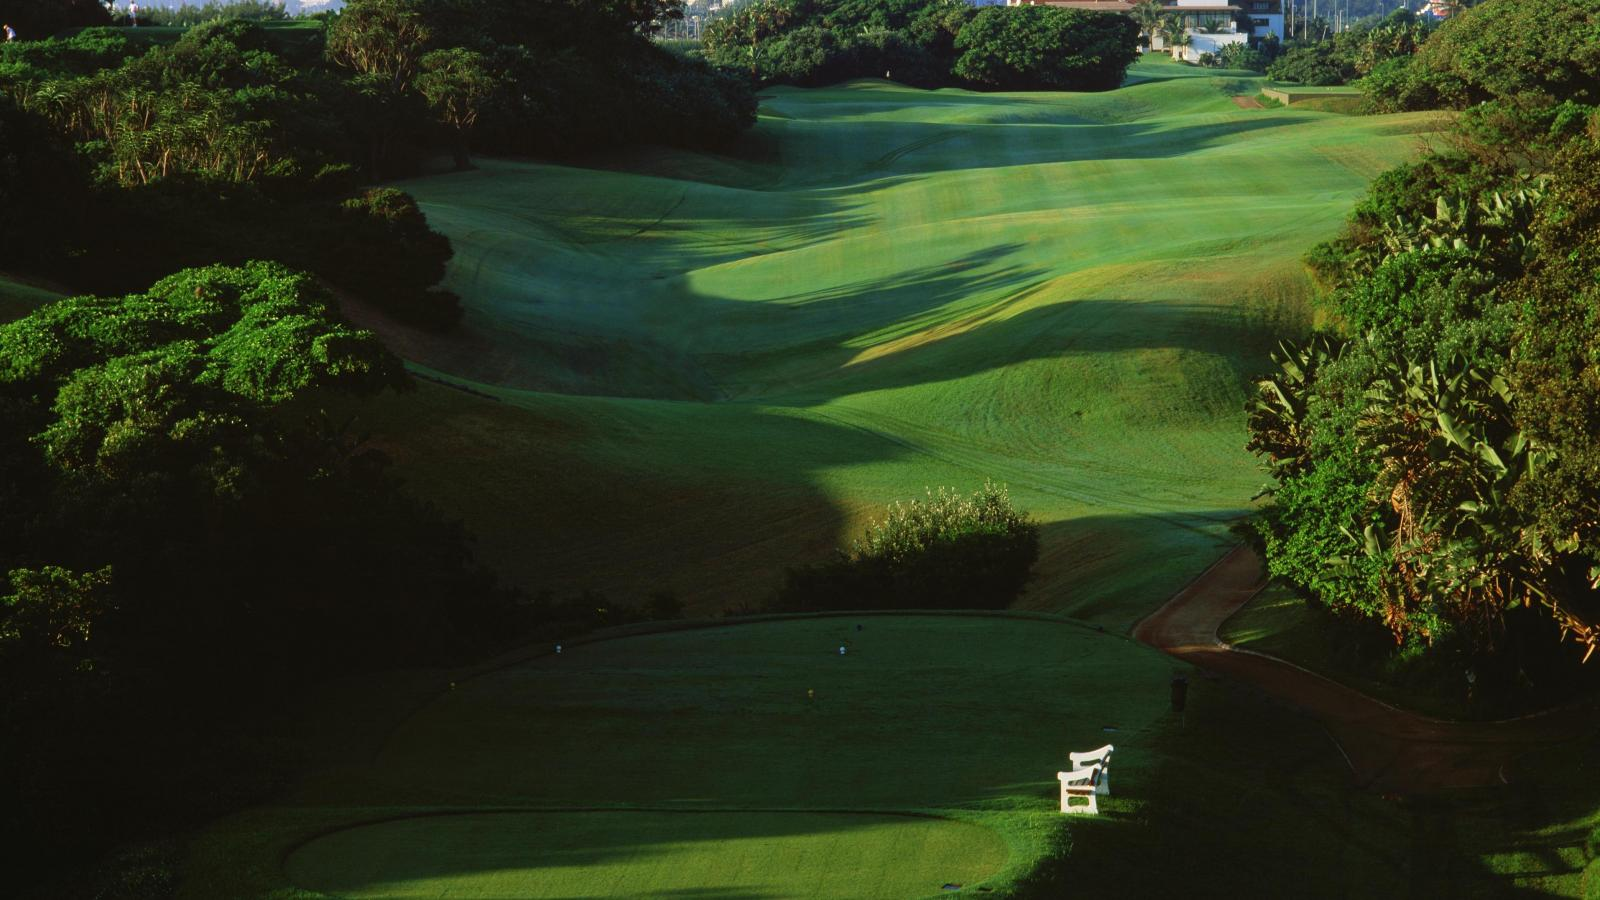 The Durban Country Club: Durban Country Club ⛳️ Book Golf Online • Golfscape™